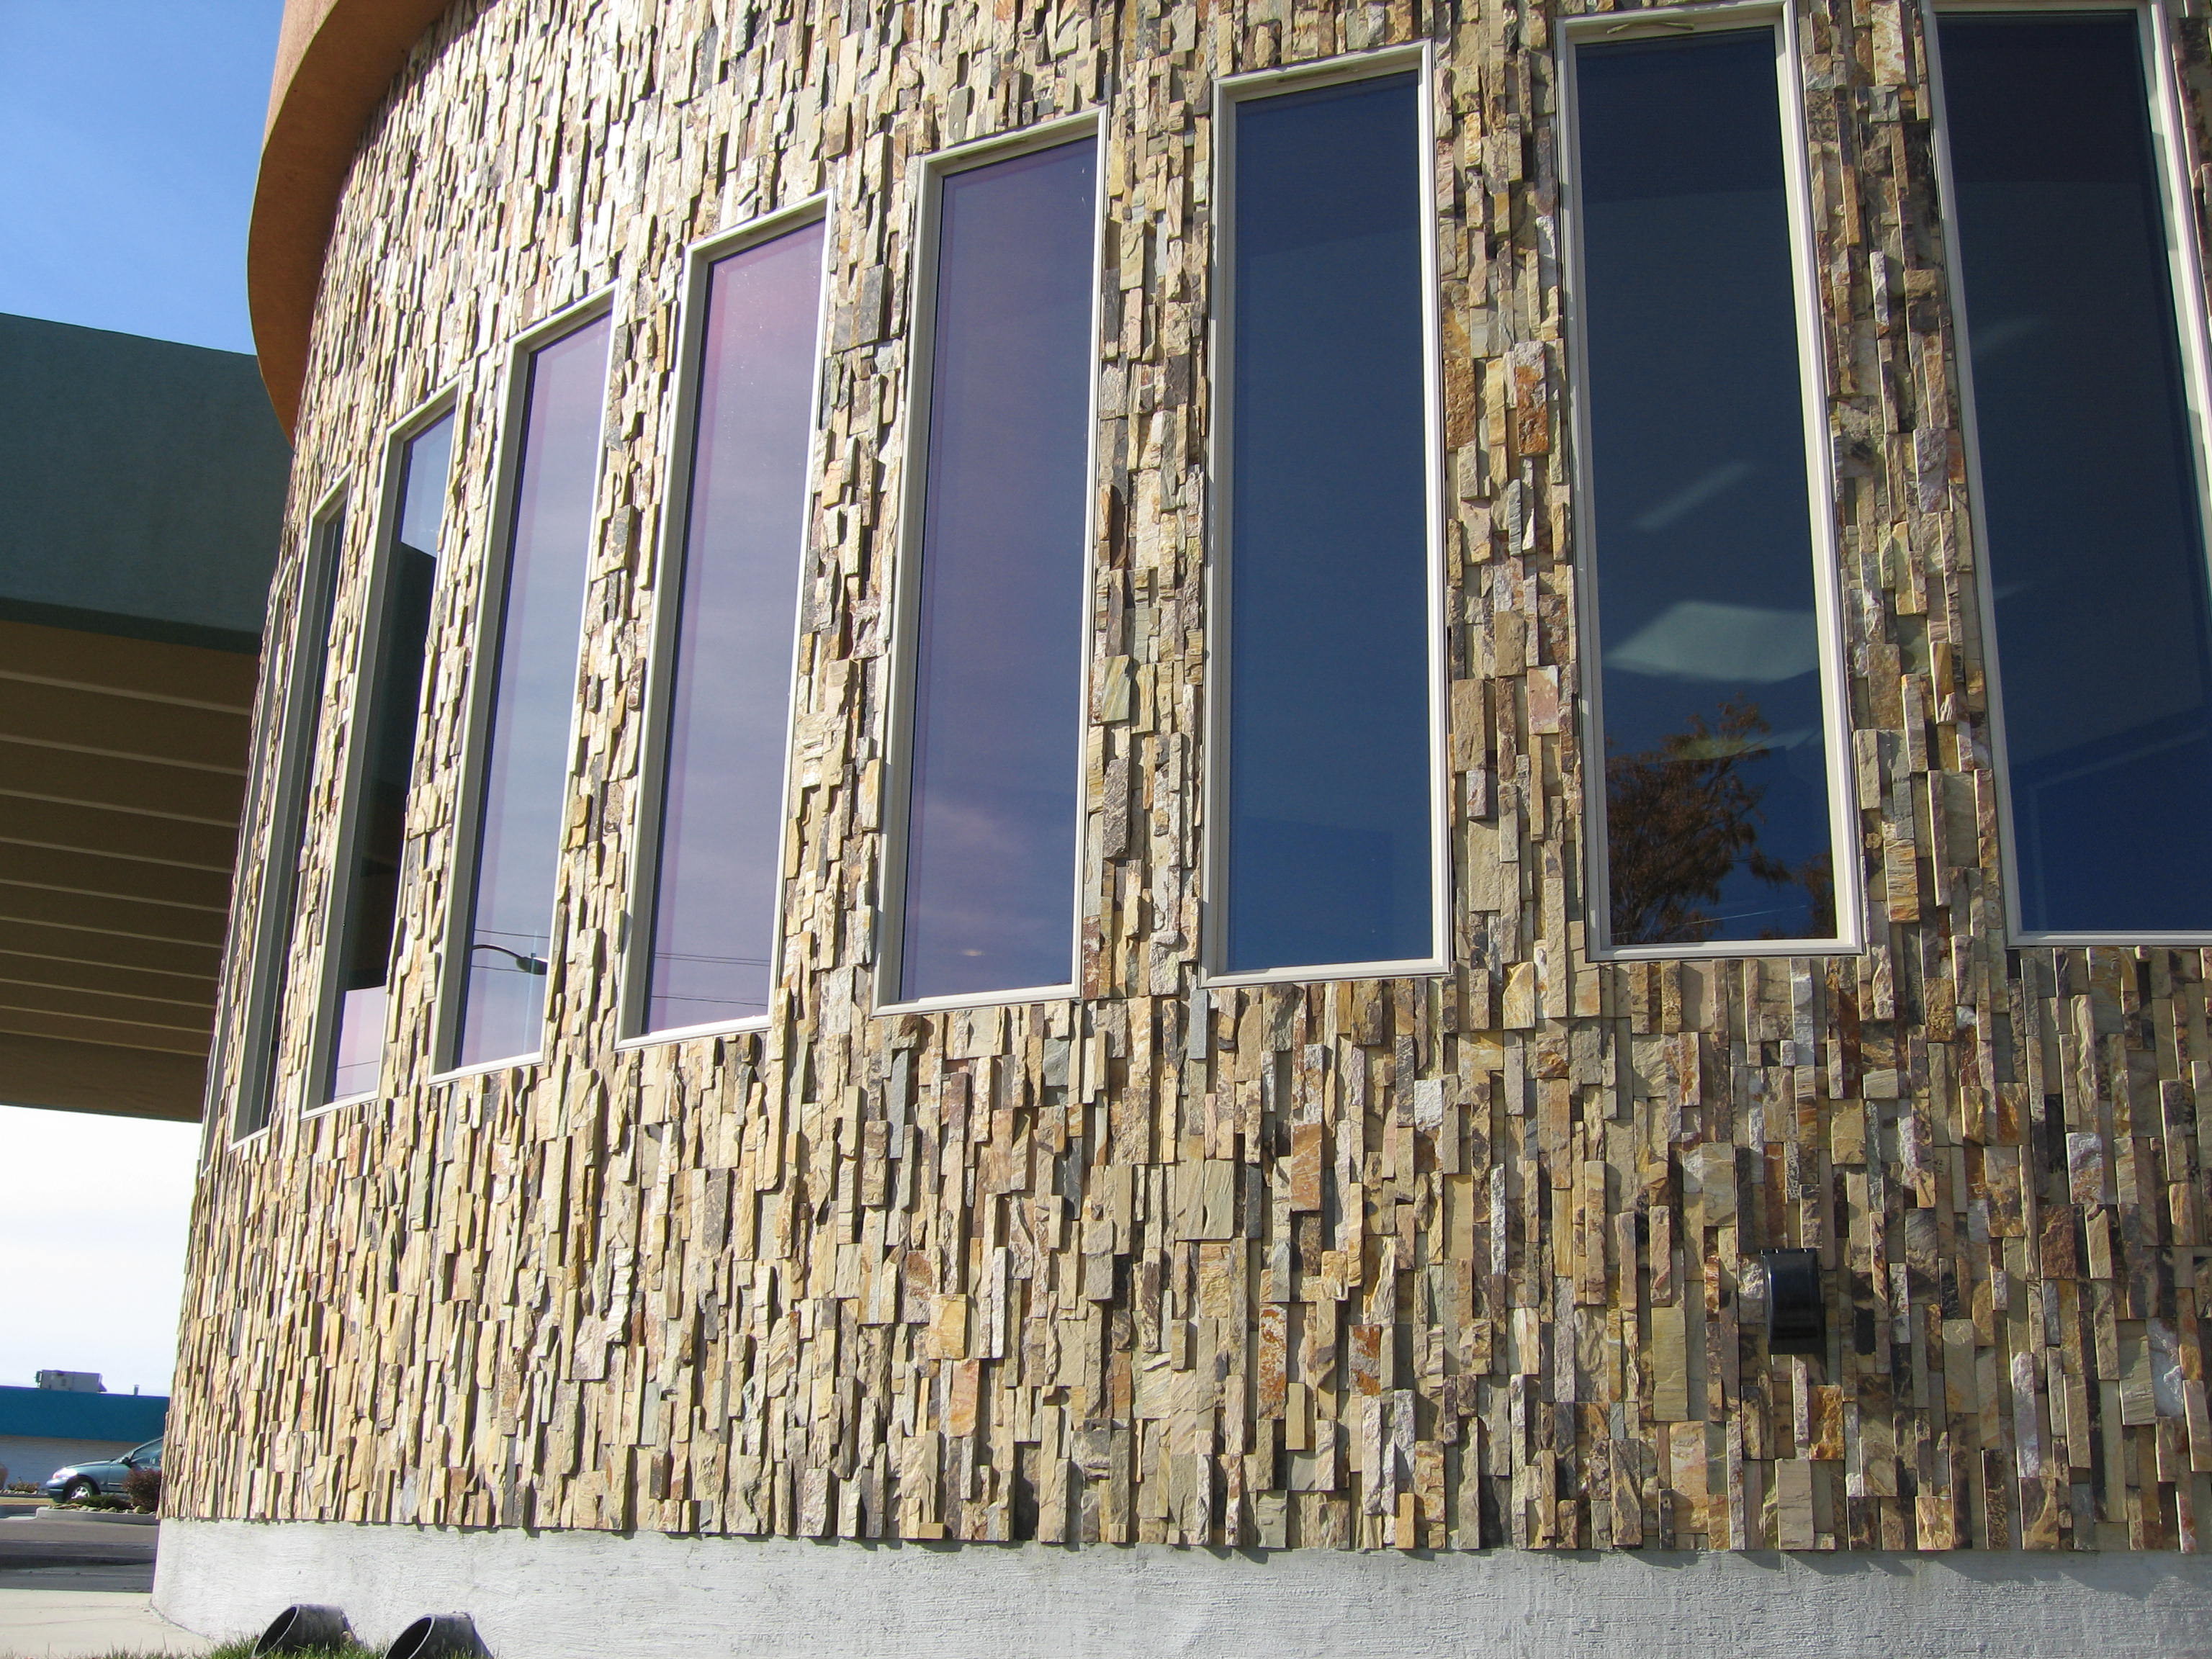 Norstone Ochre Blend Rock Panels installed on a vertical orientation on an exterior convex radius wall